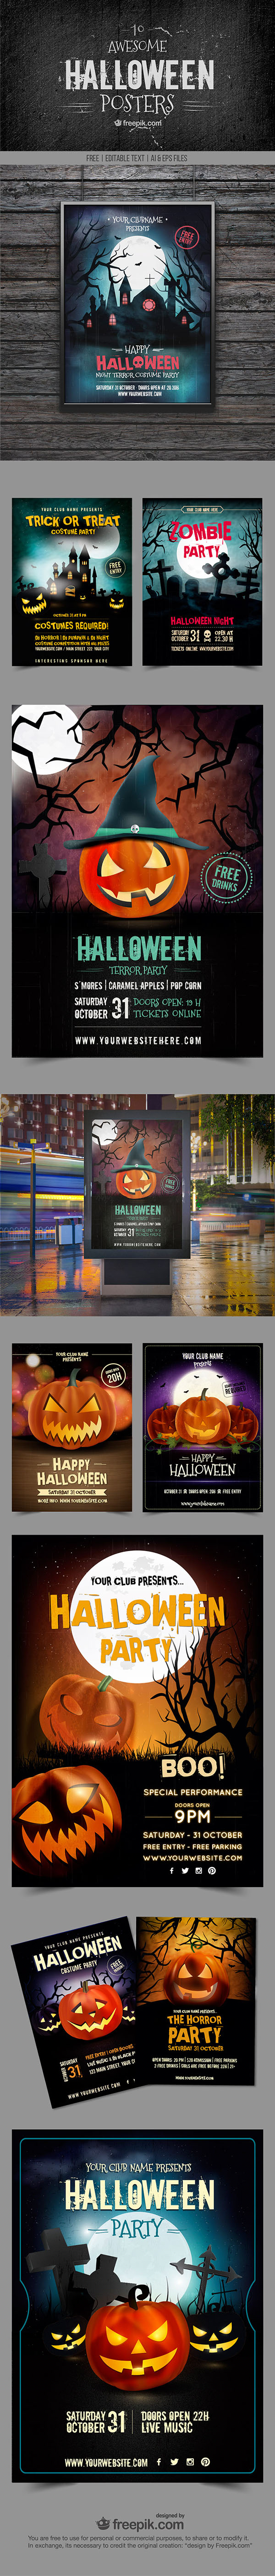 halloween free resources costume ideas posters vectors ideas